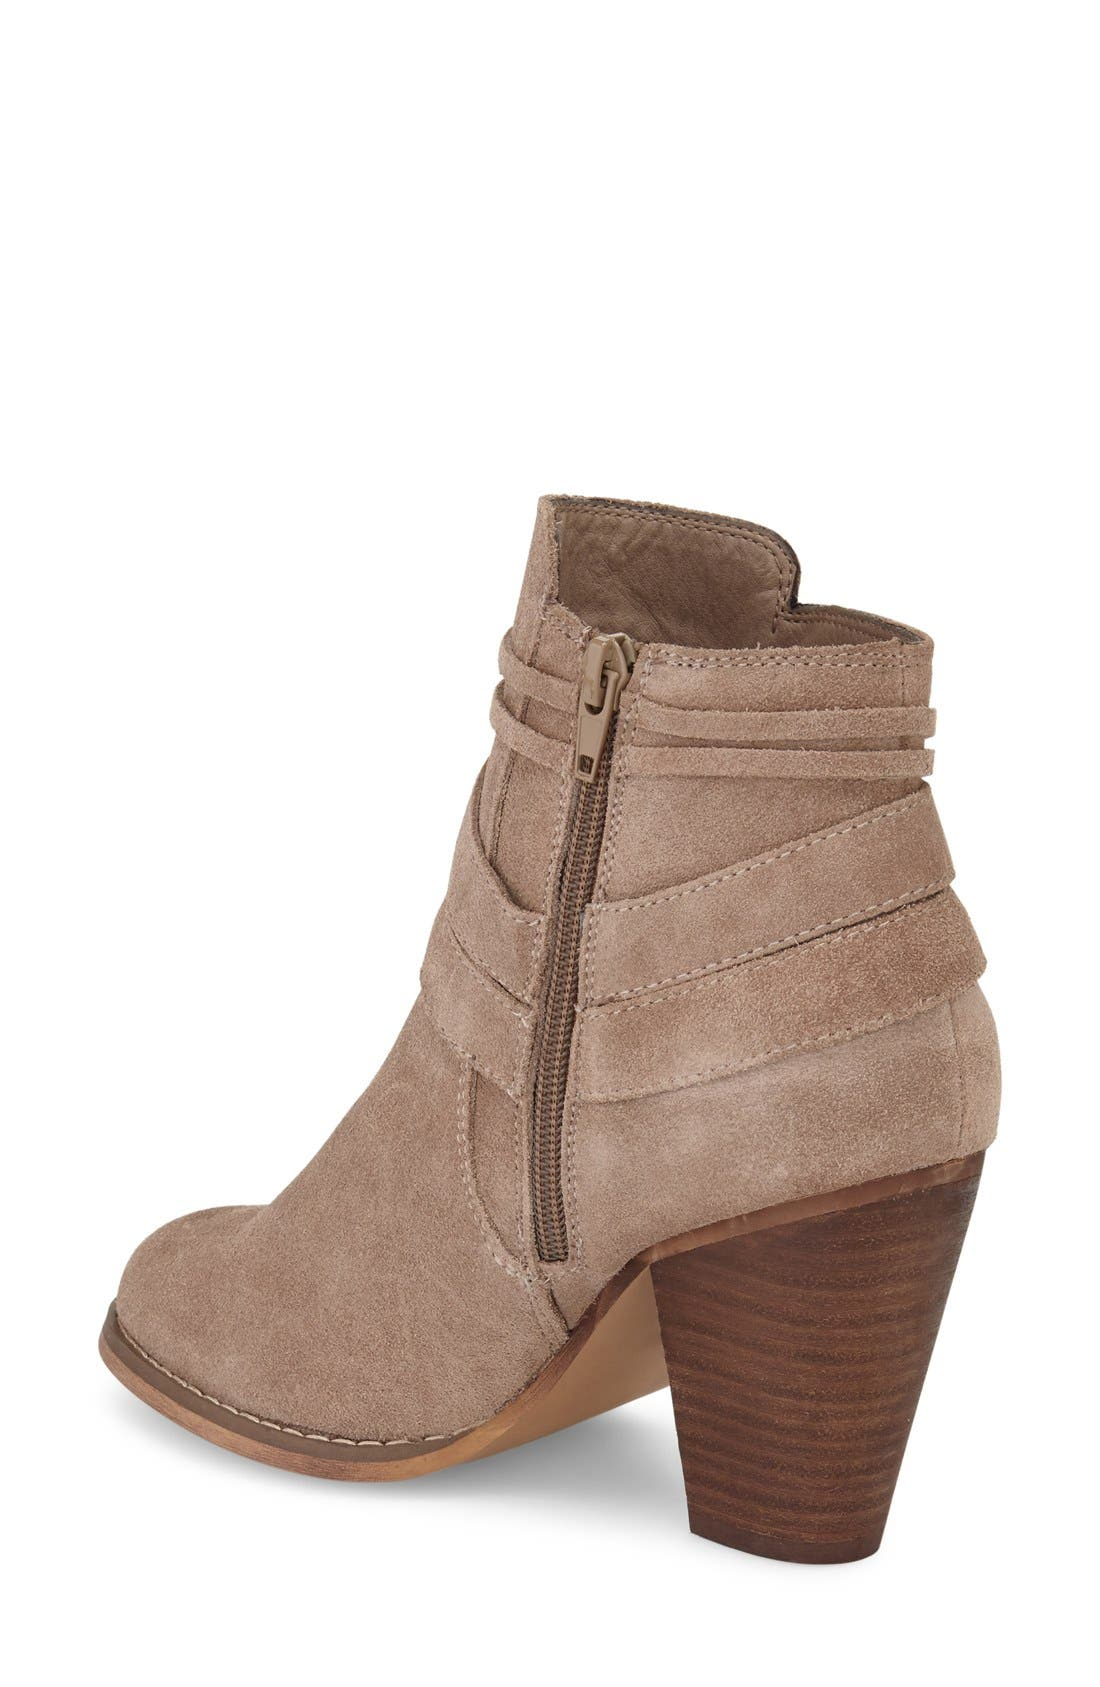 Rumi Bootie,                             Alternate thumbnail 2, color,                             Taupe